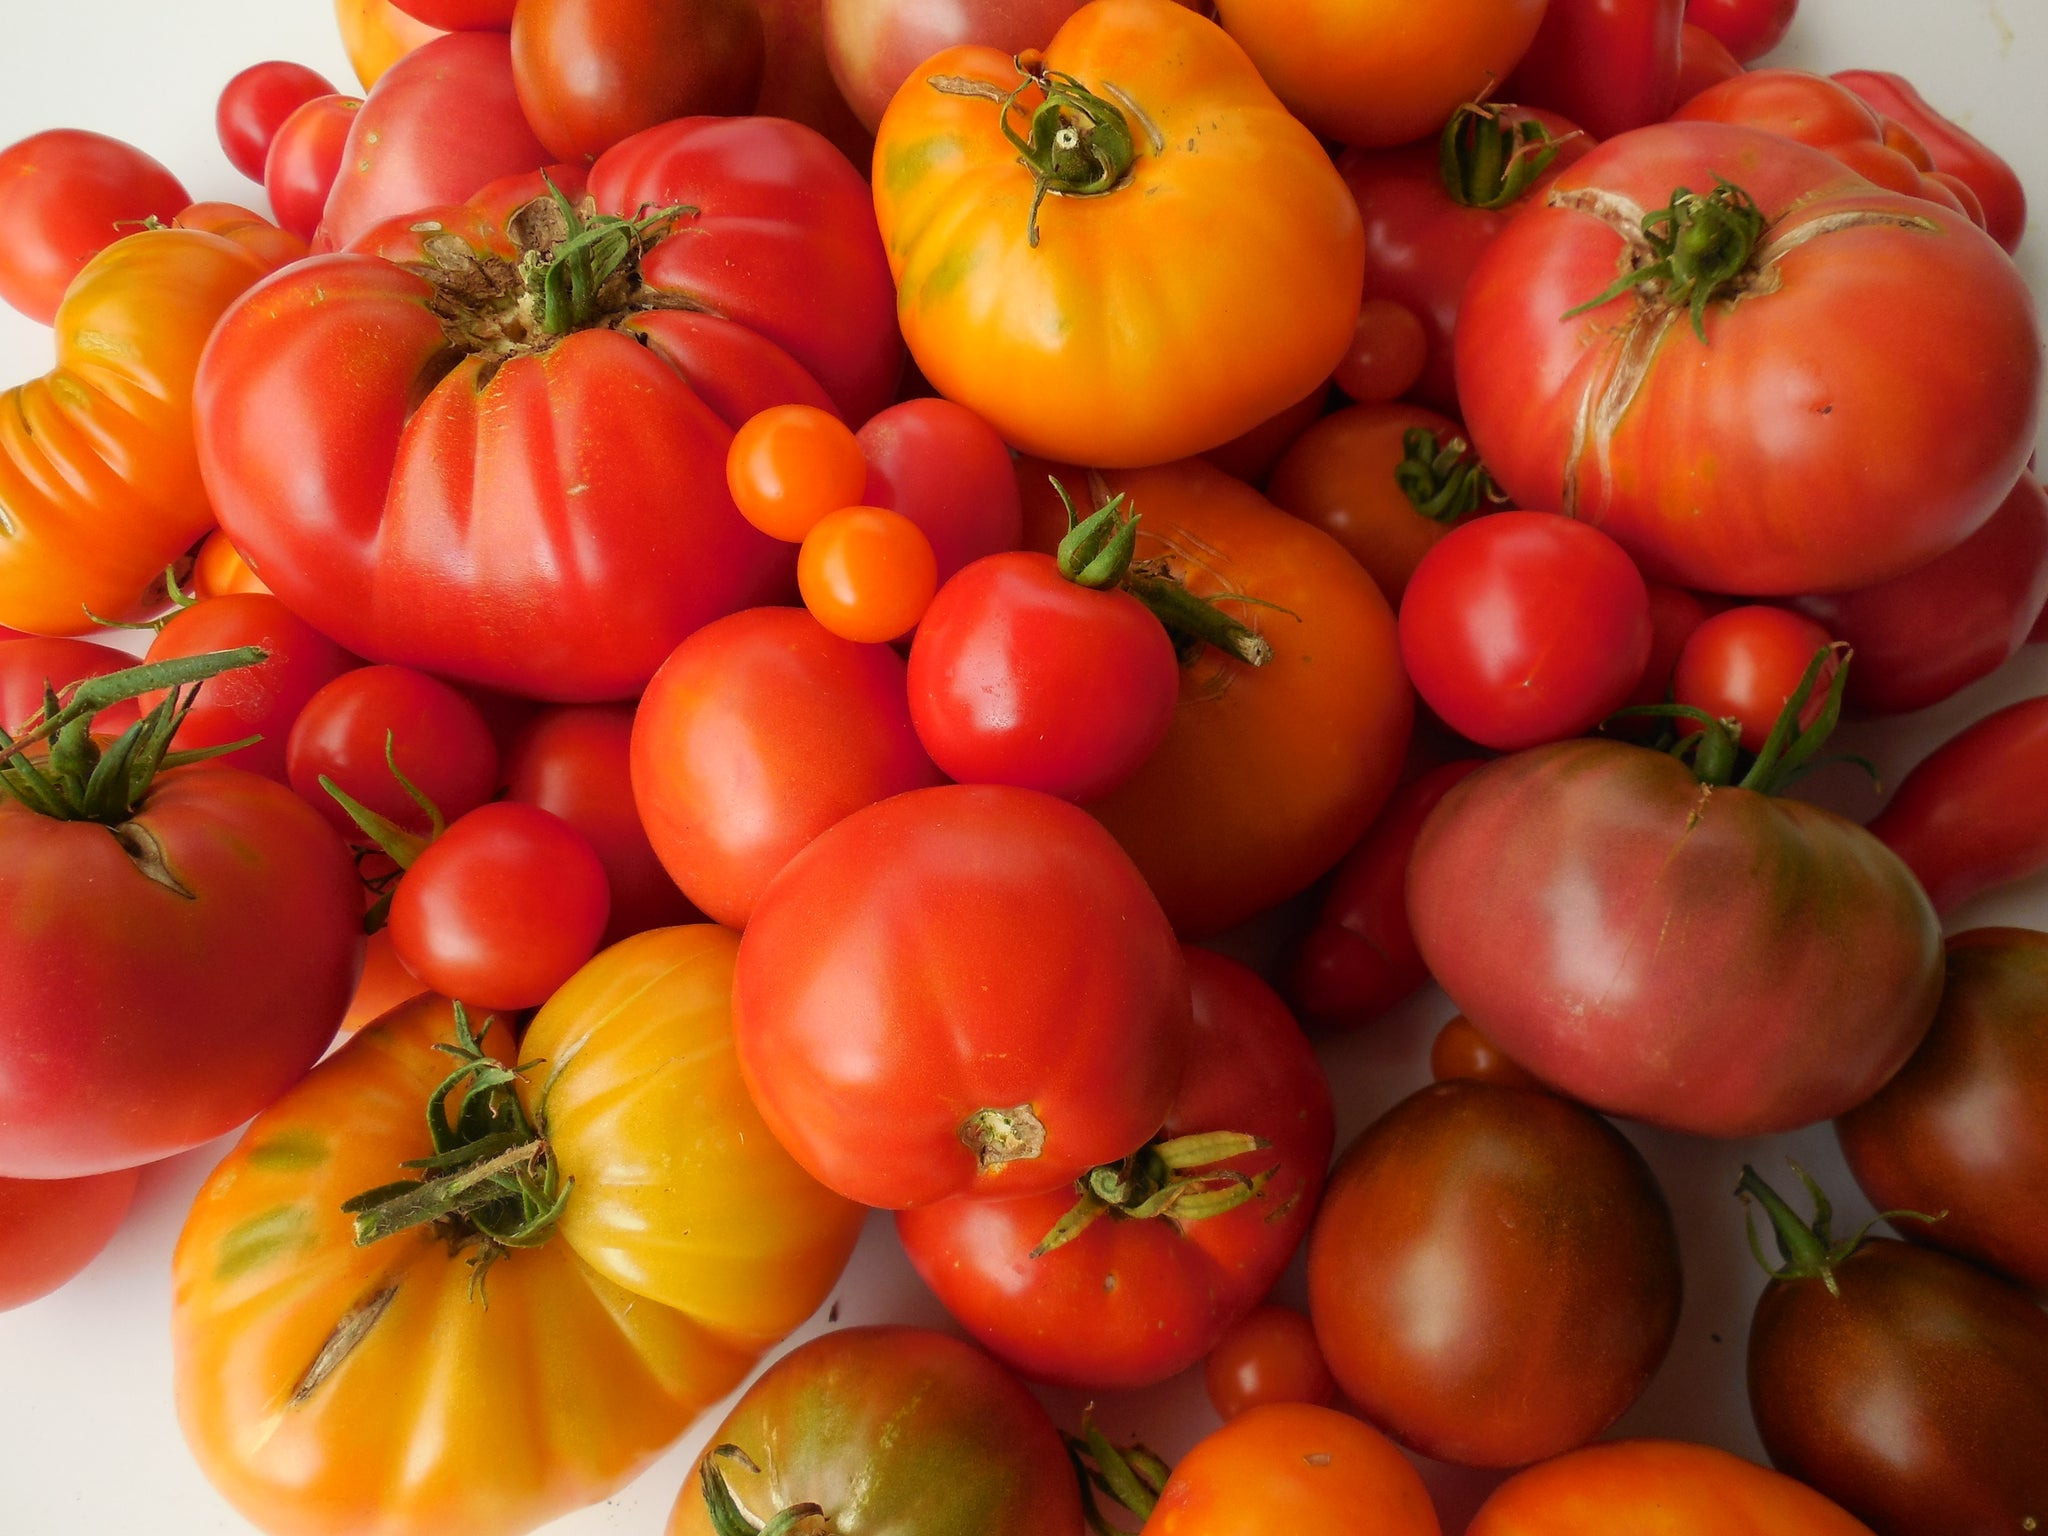 Favorite Tomato Varieties - from Sandiaseed.com